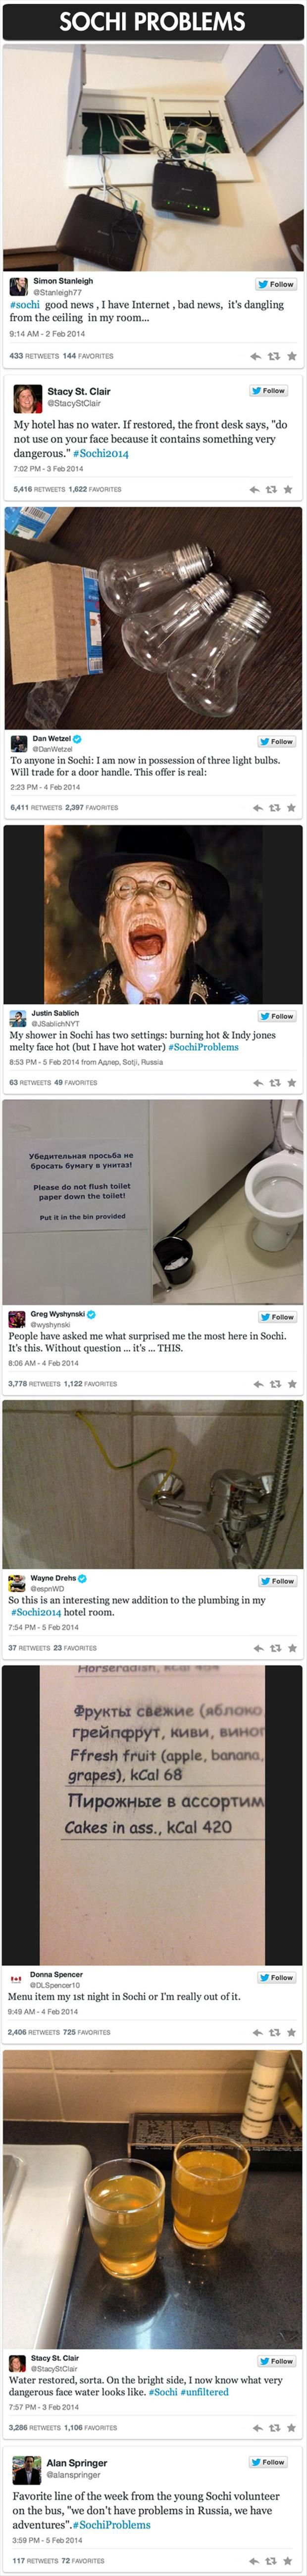 Best Images About Funny YahooFacebookTwitter On Pinterest - Sochi problems tweets